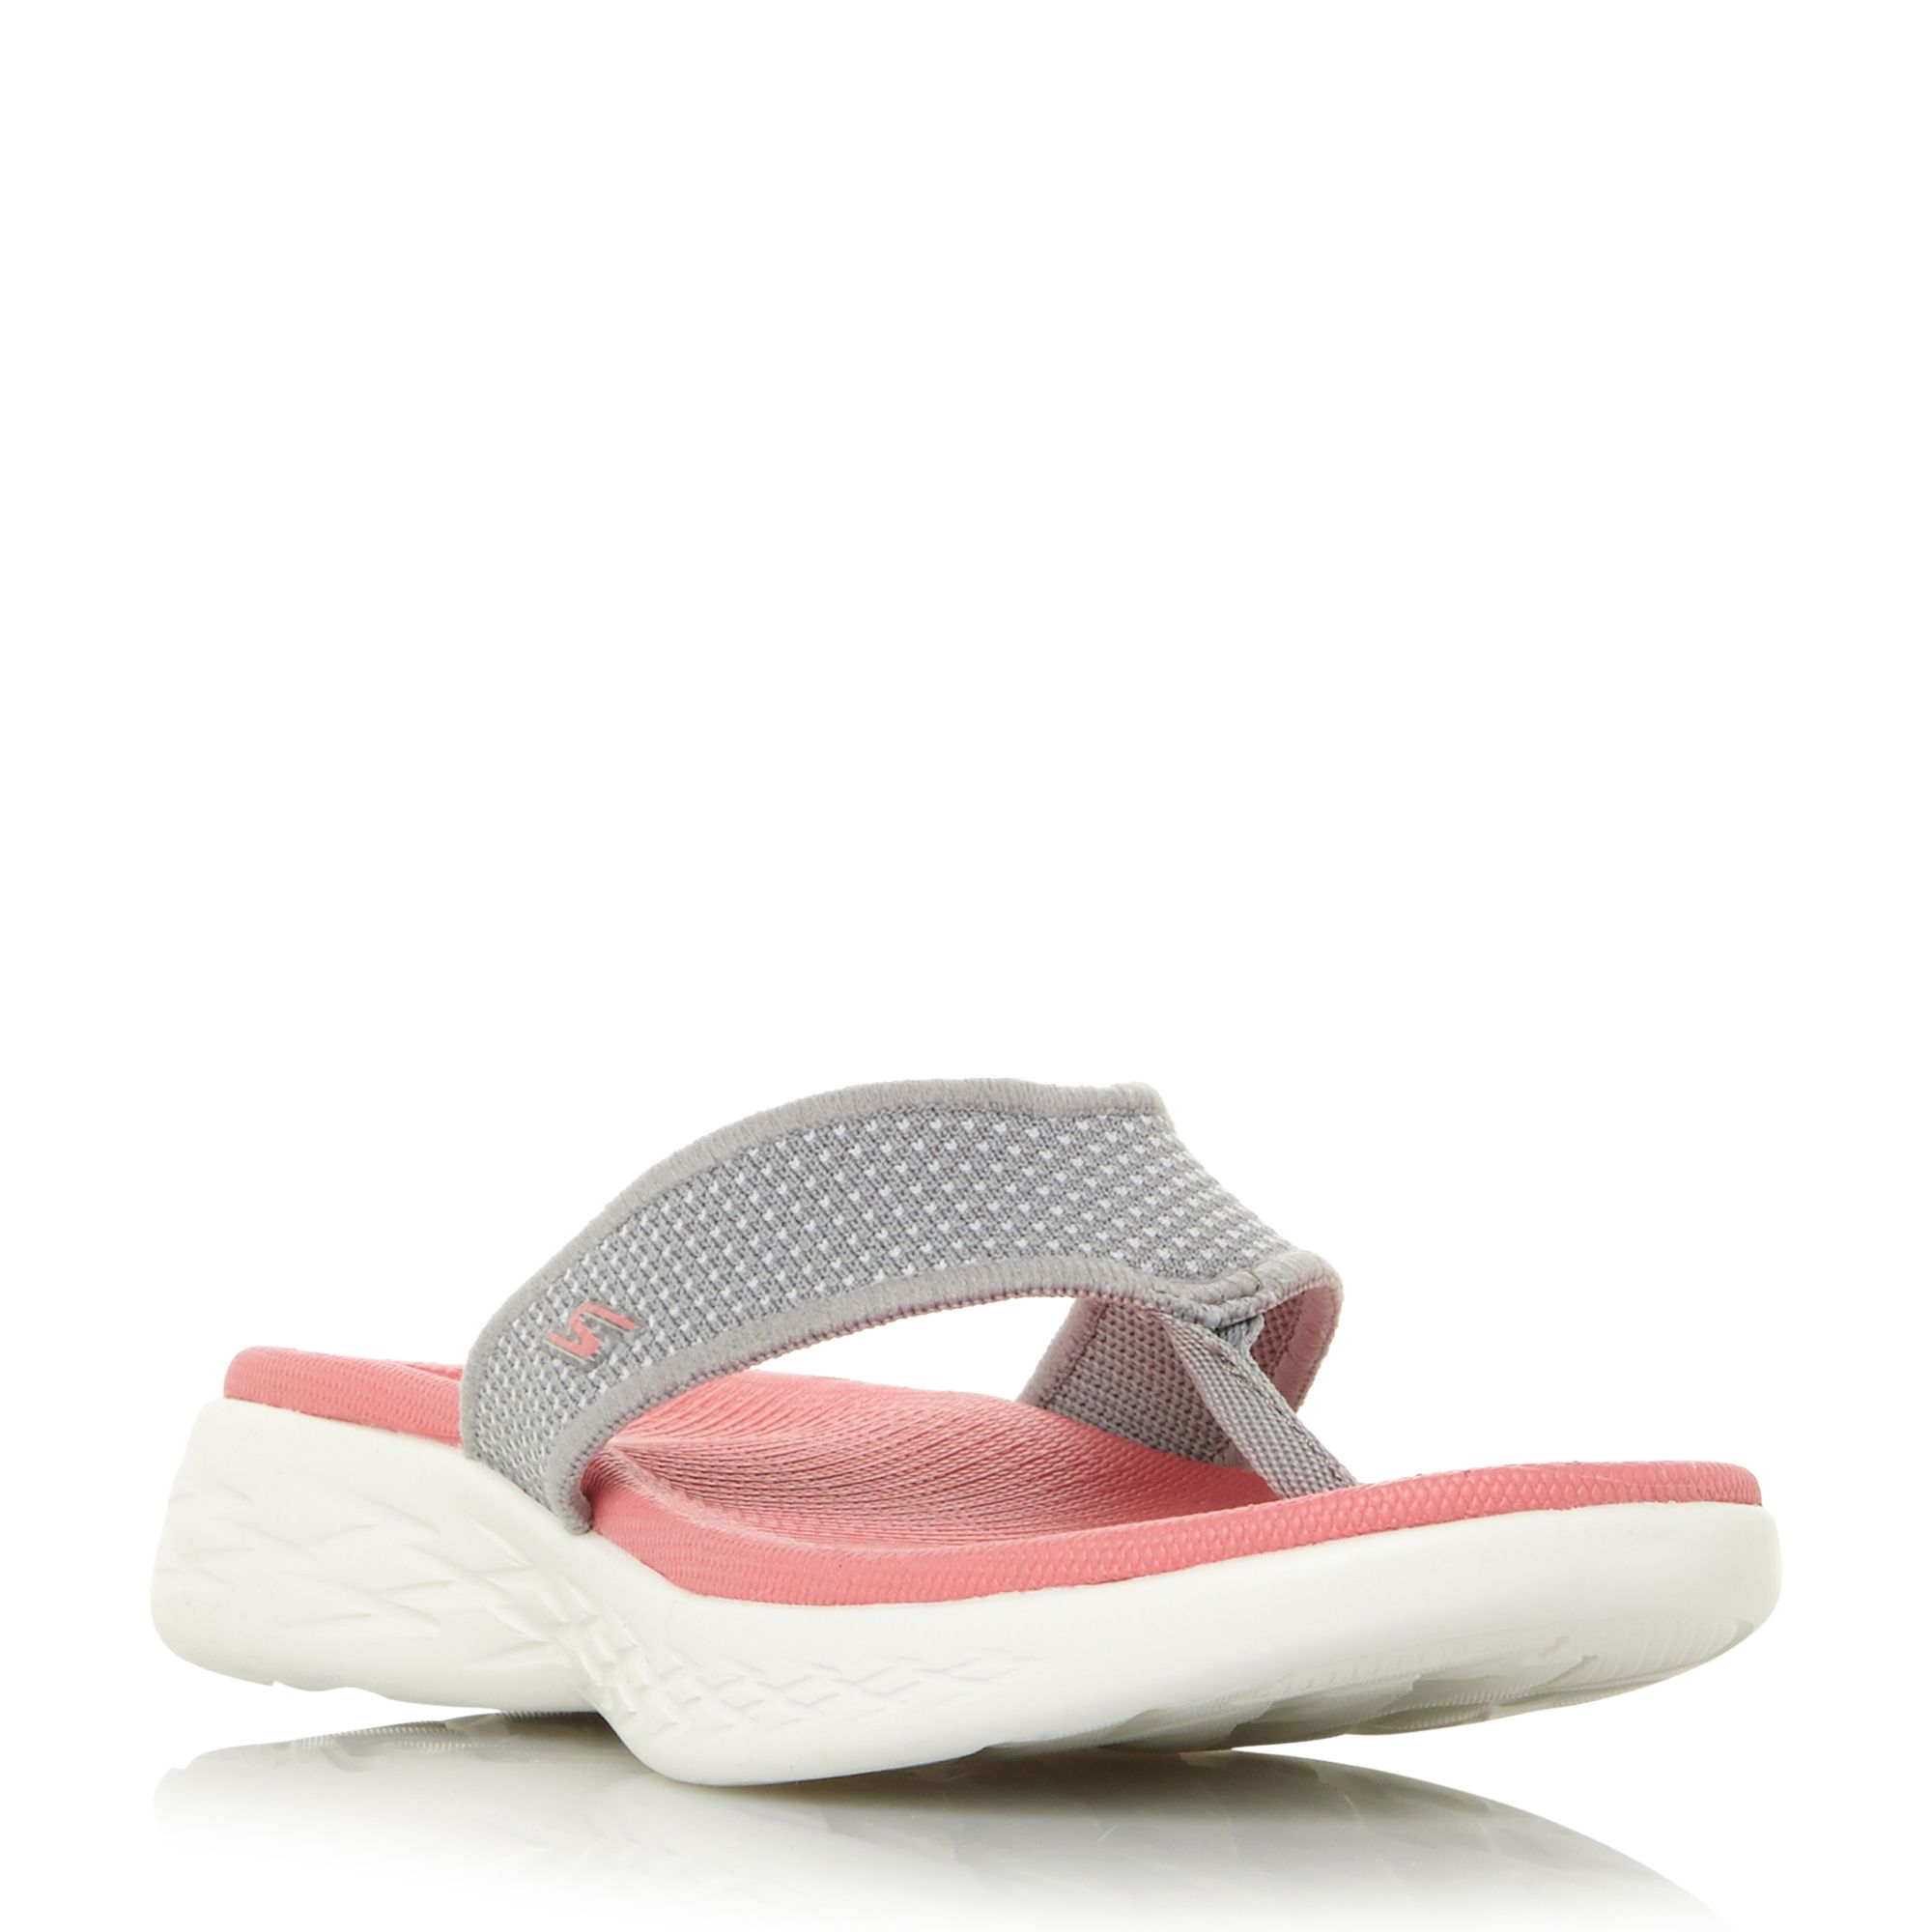 Skechers On The Go 600 Footbed Sandal Shoes, Grey